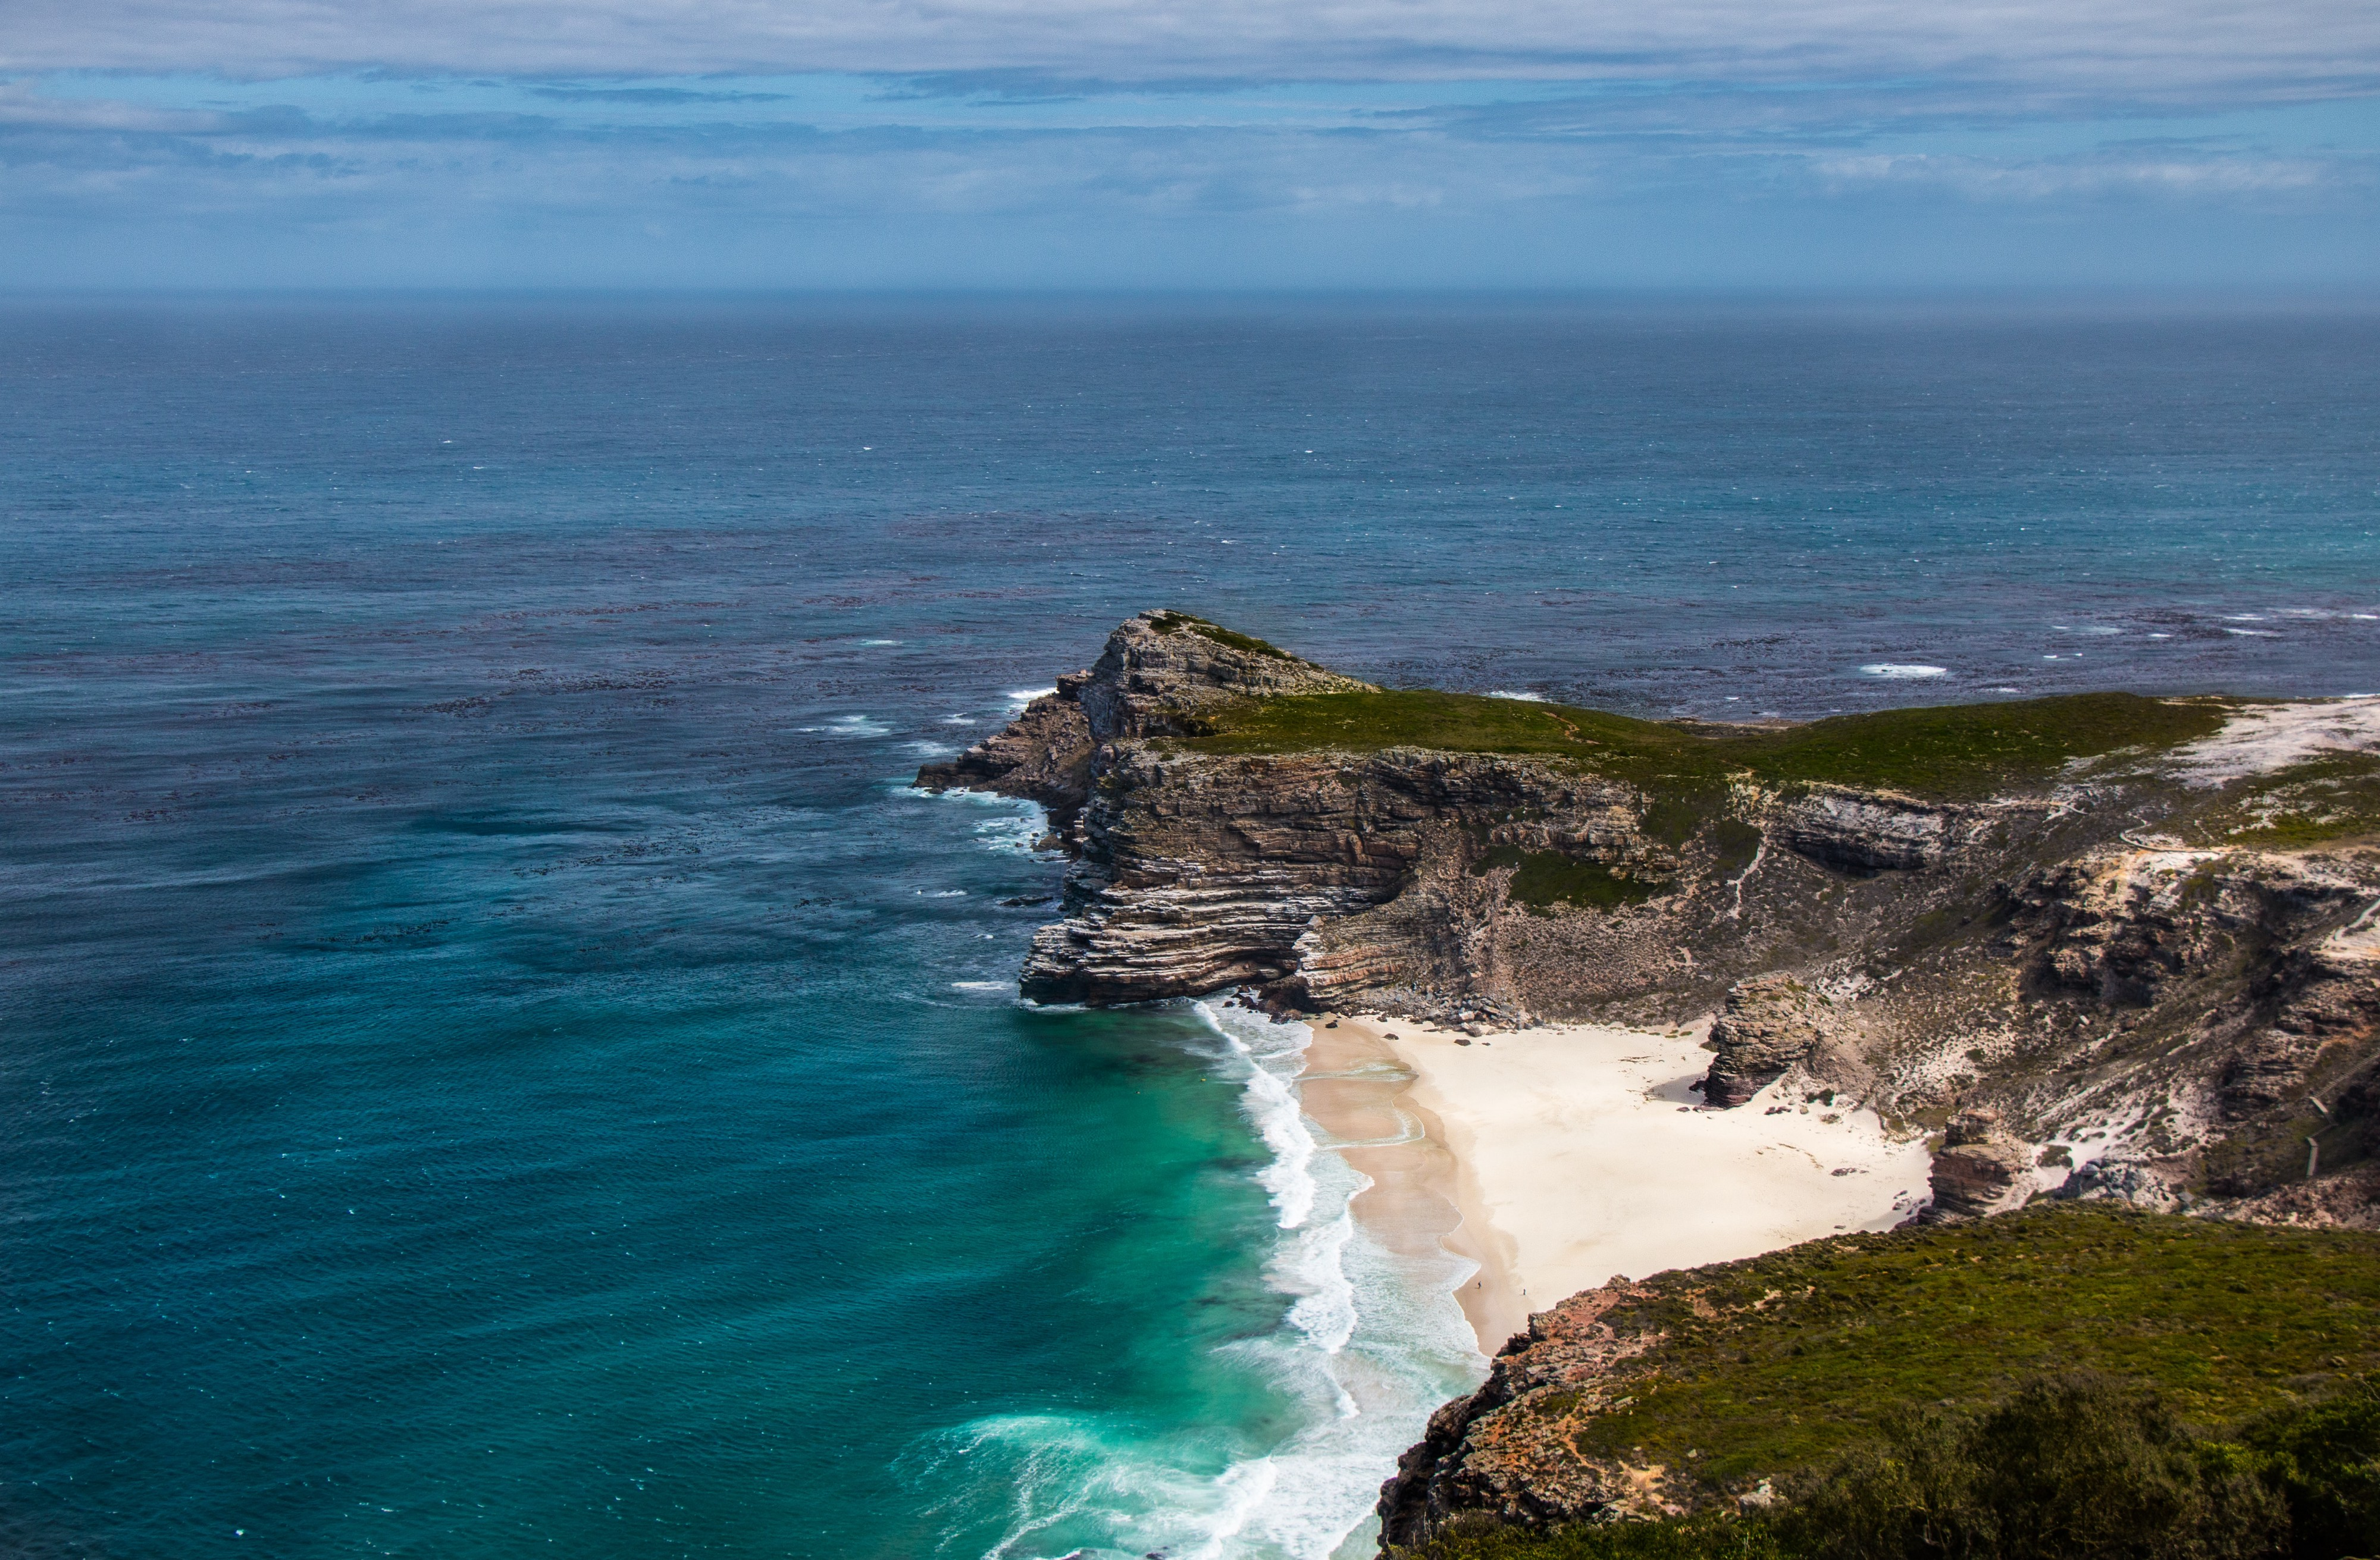 Green mountain cliff and sandy edge of the Cape of Good Hope poking out into a blue green ocean.